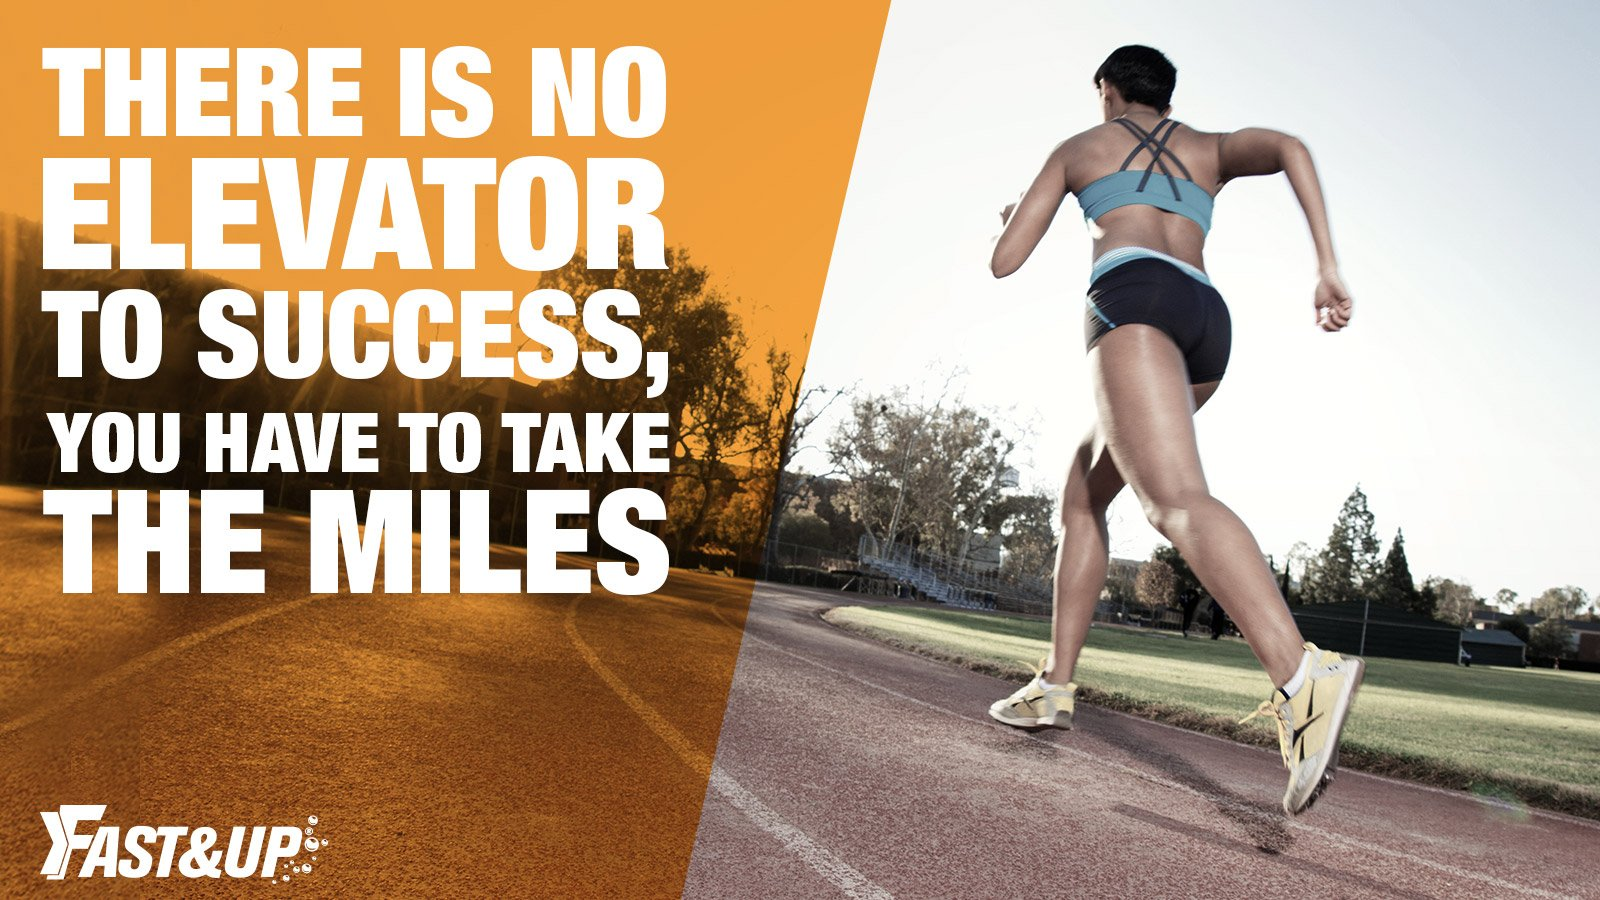 Blog-2--There-is-no-elevator-to-success,-you-have-to-take-the-MILES